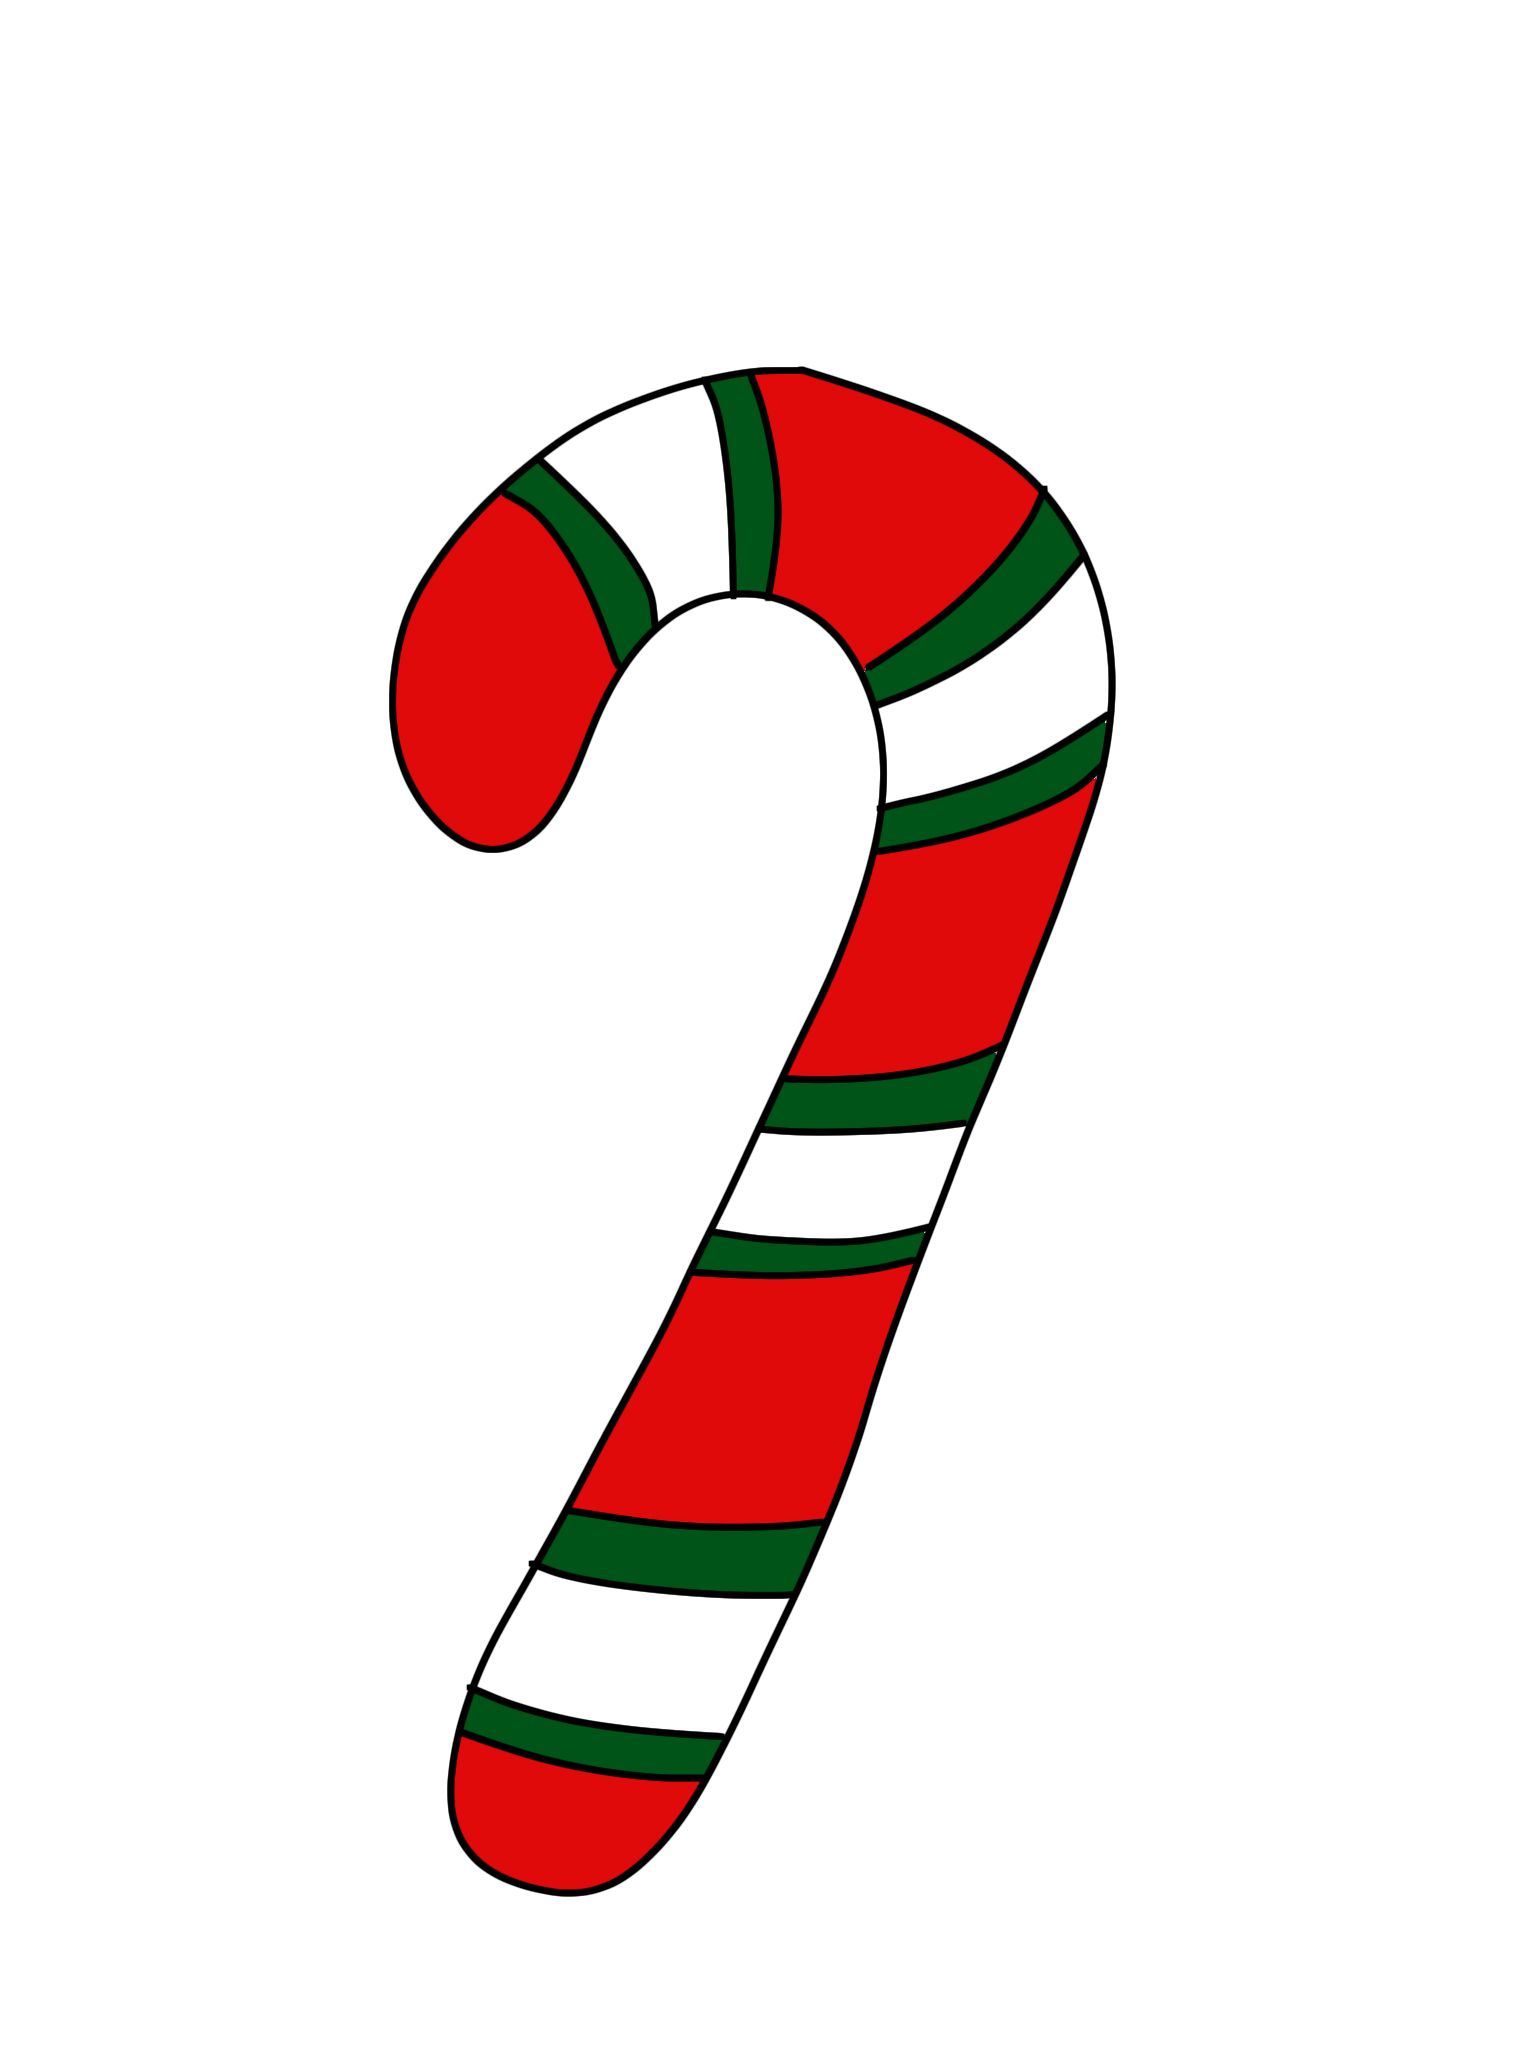 Candy Cane Clipart   Free download on ClipArtMag